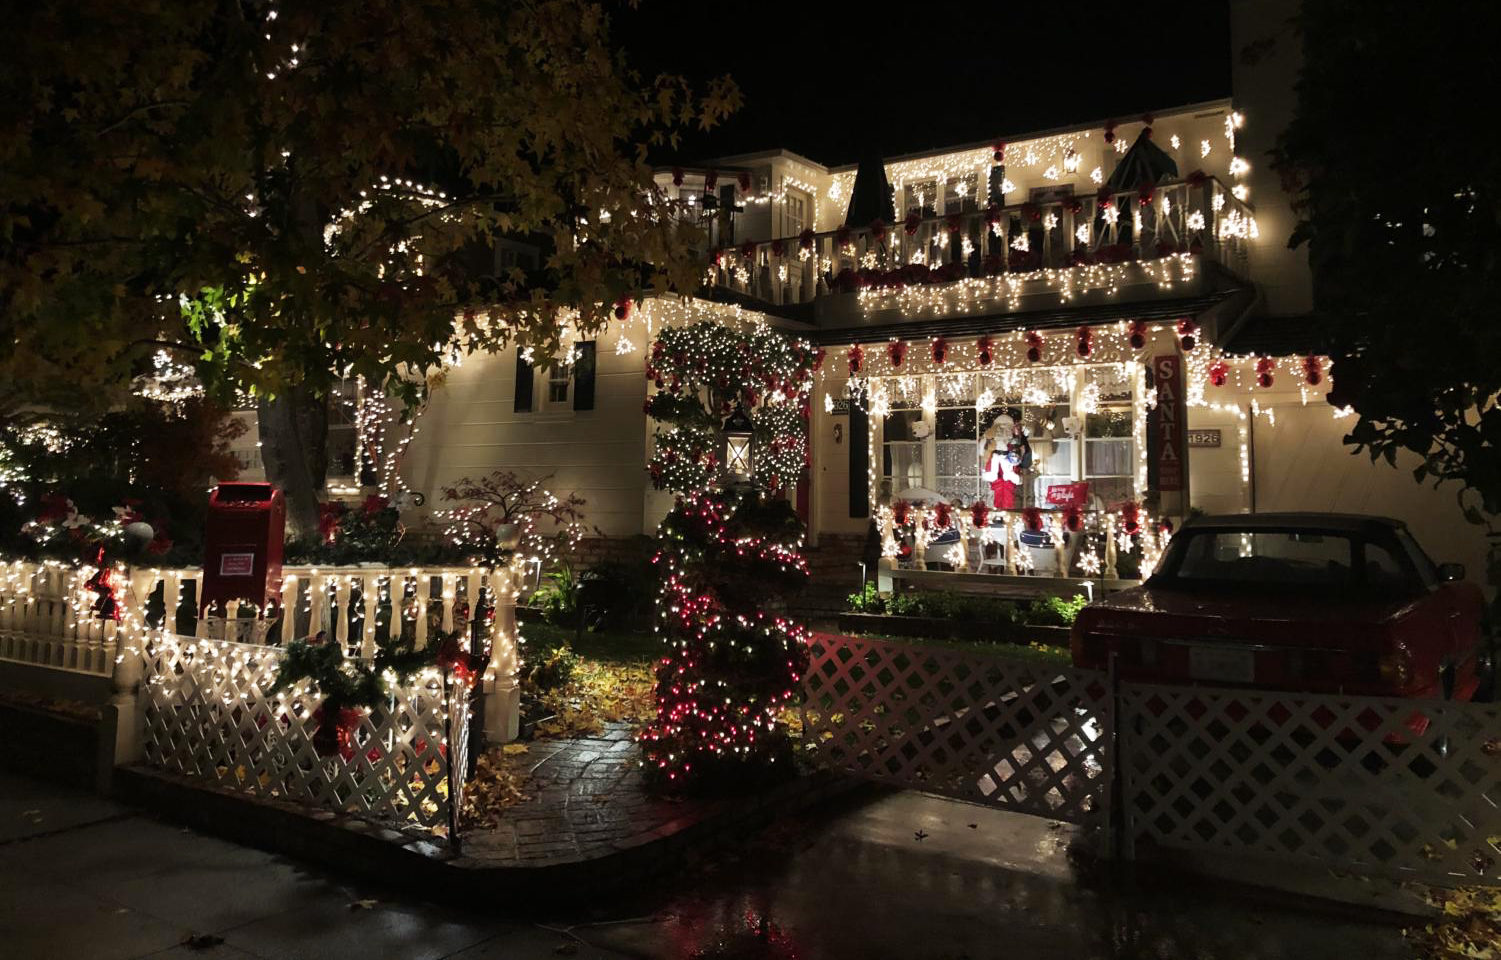 The houses on Eucalyptus Street feature bright lights to celebrate the holiday season.